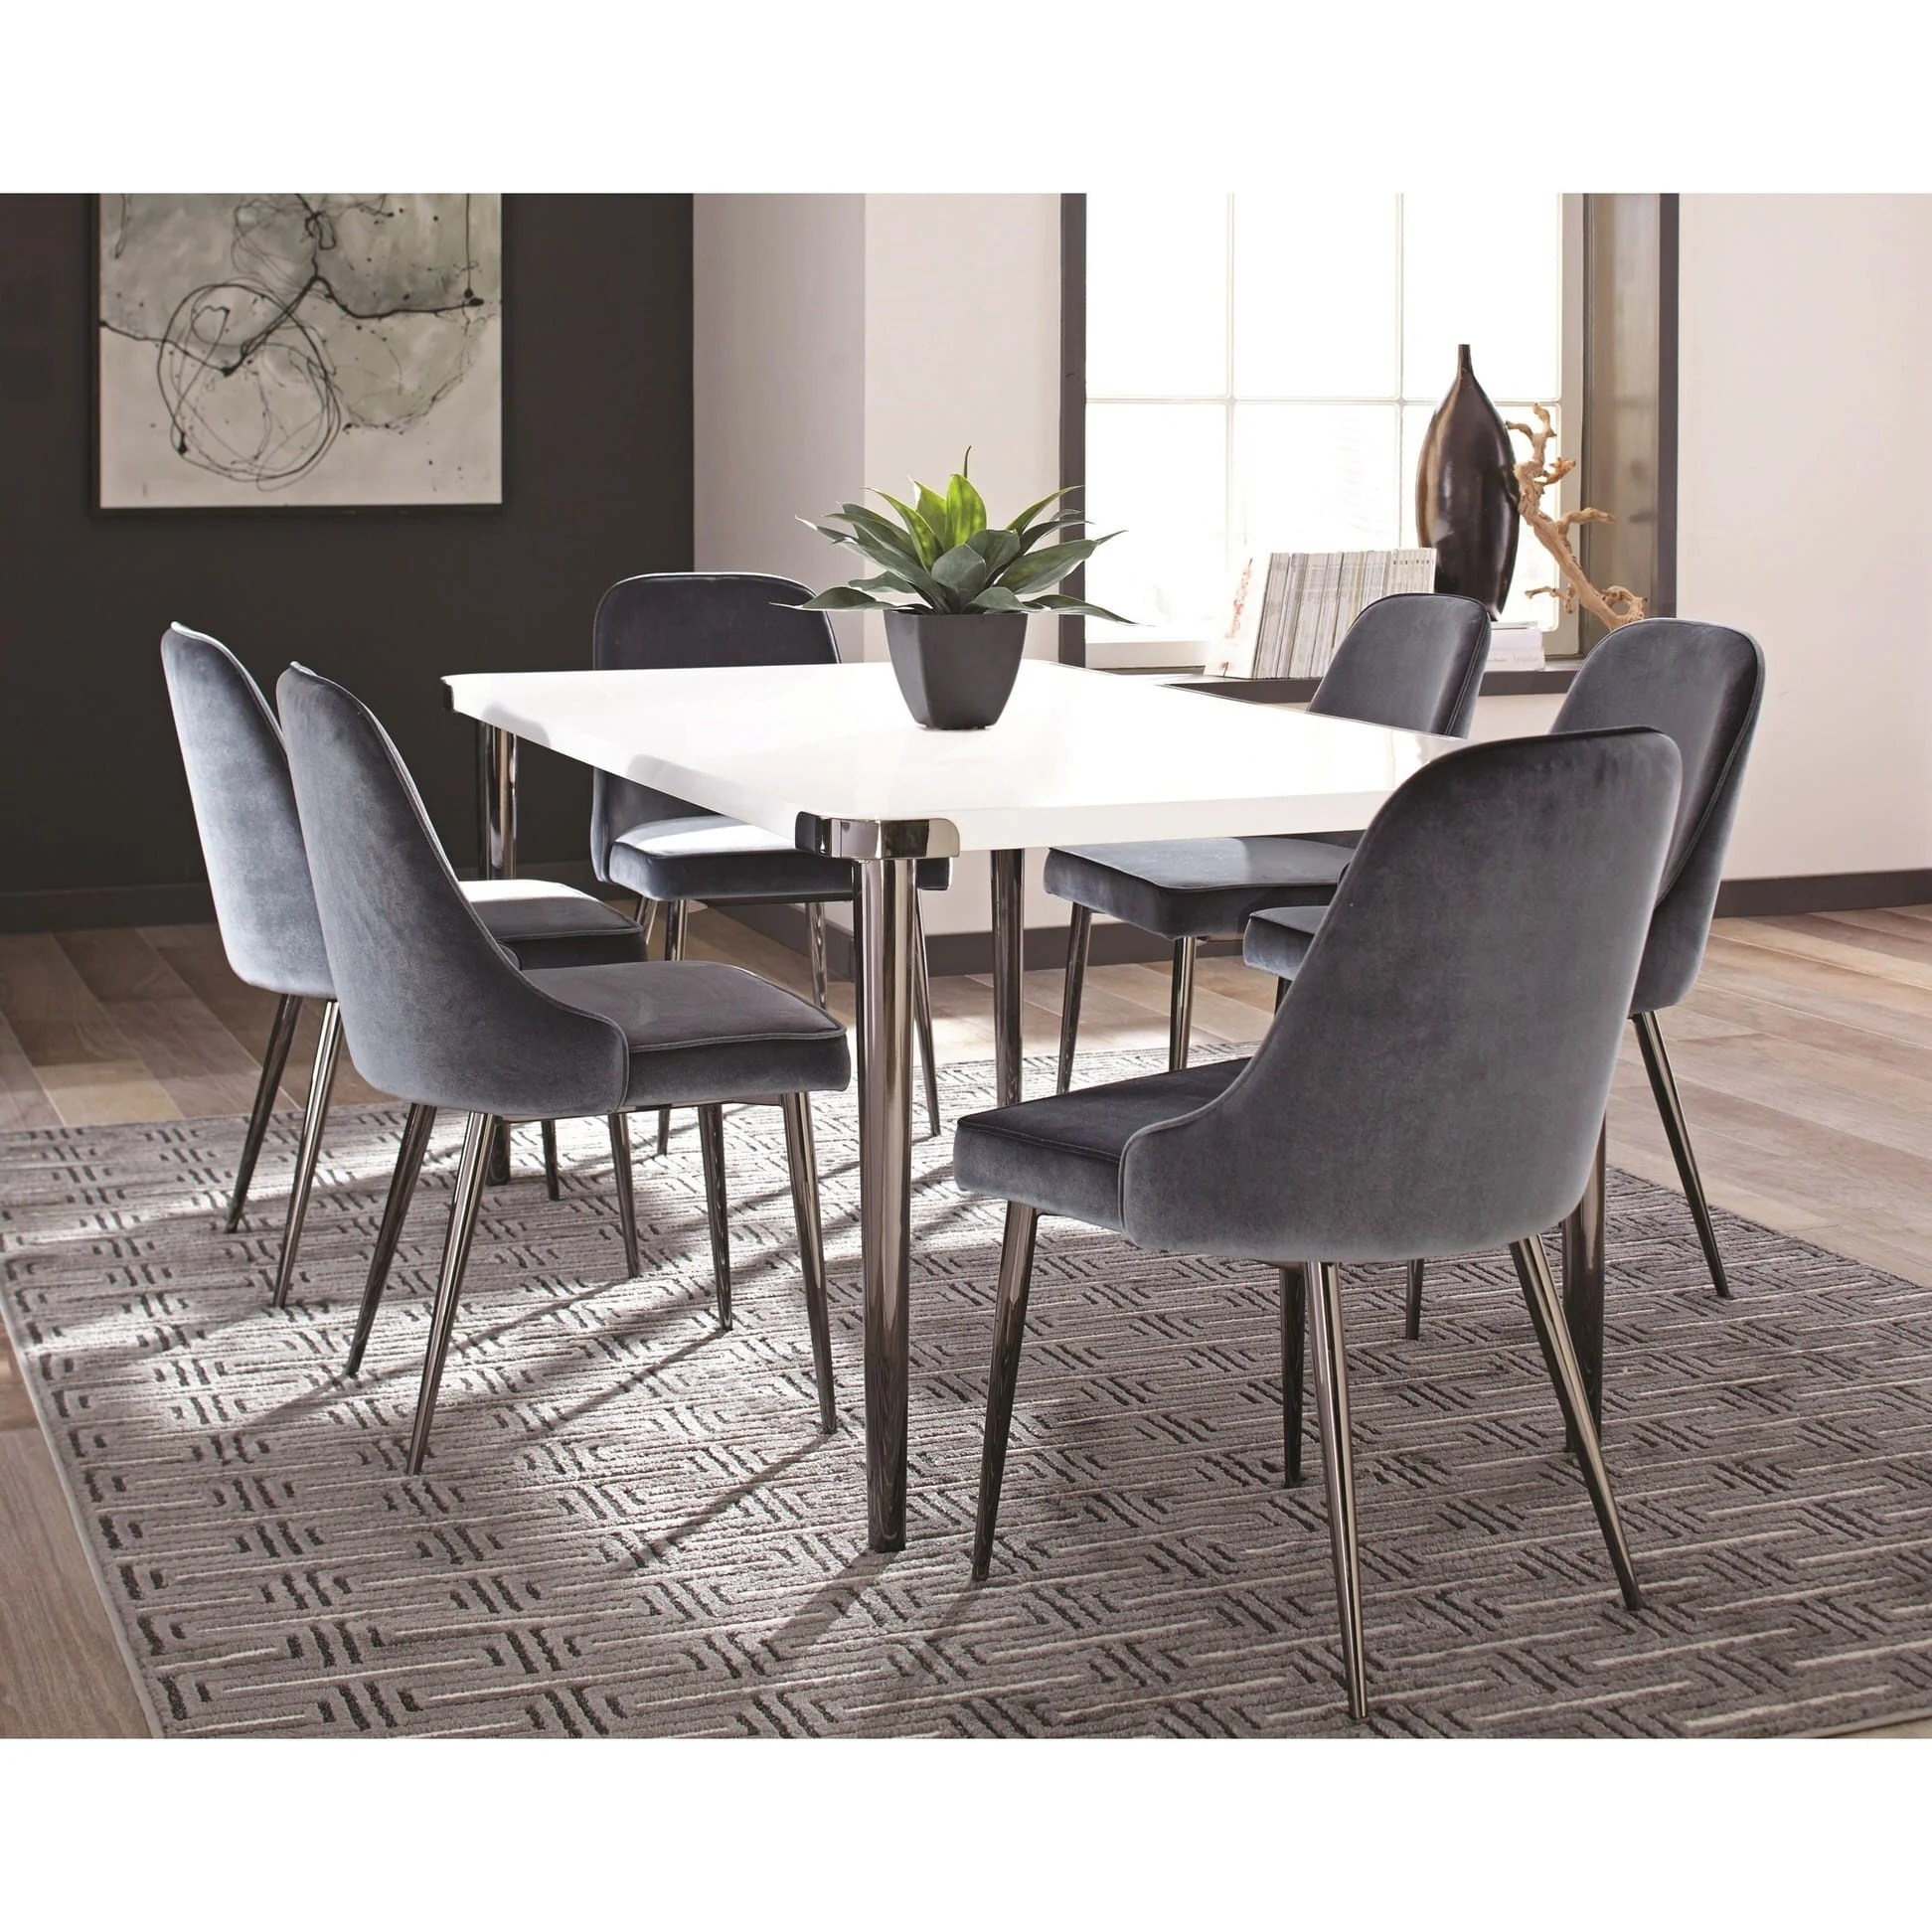 Blue Dining Chairs 107954 Slate Blue Dining Chair By Scott Living